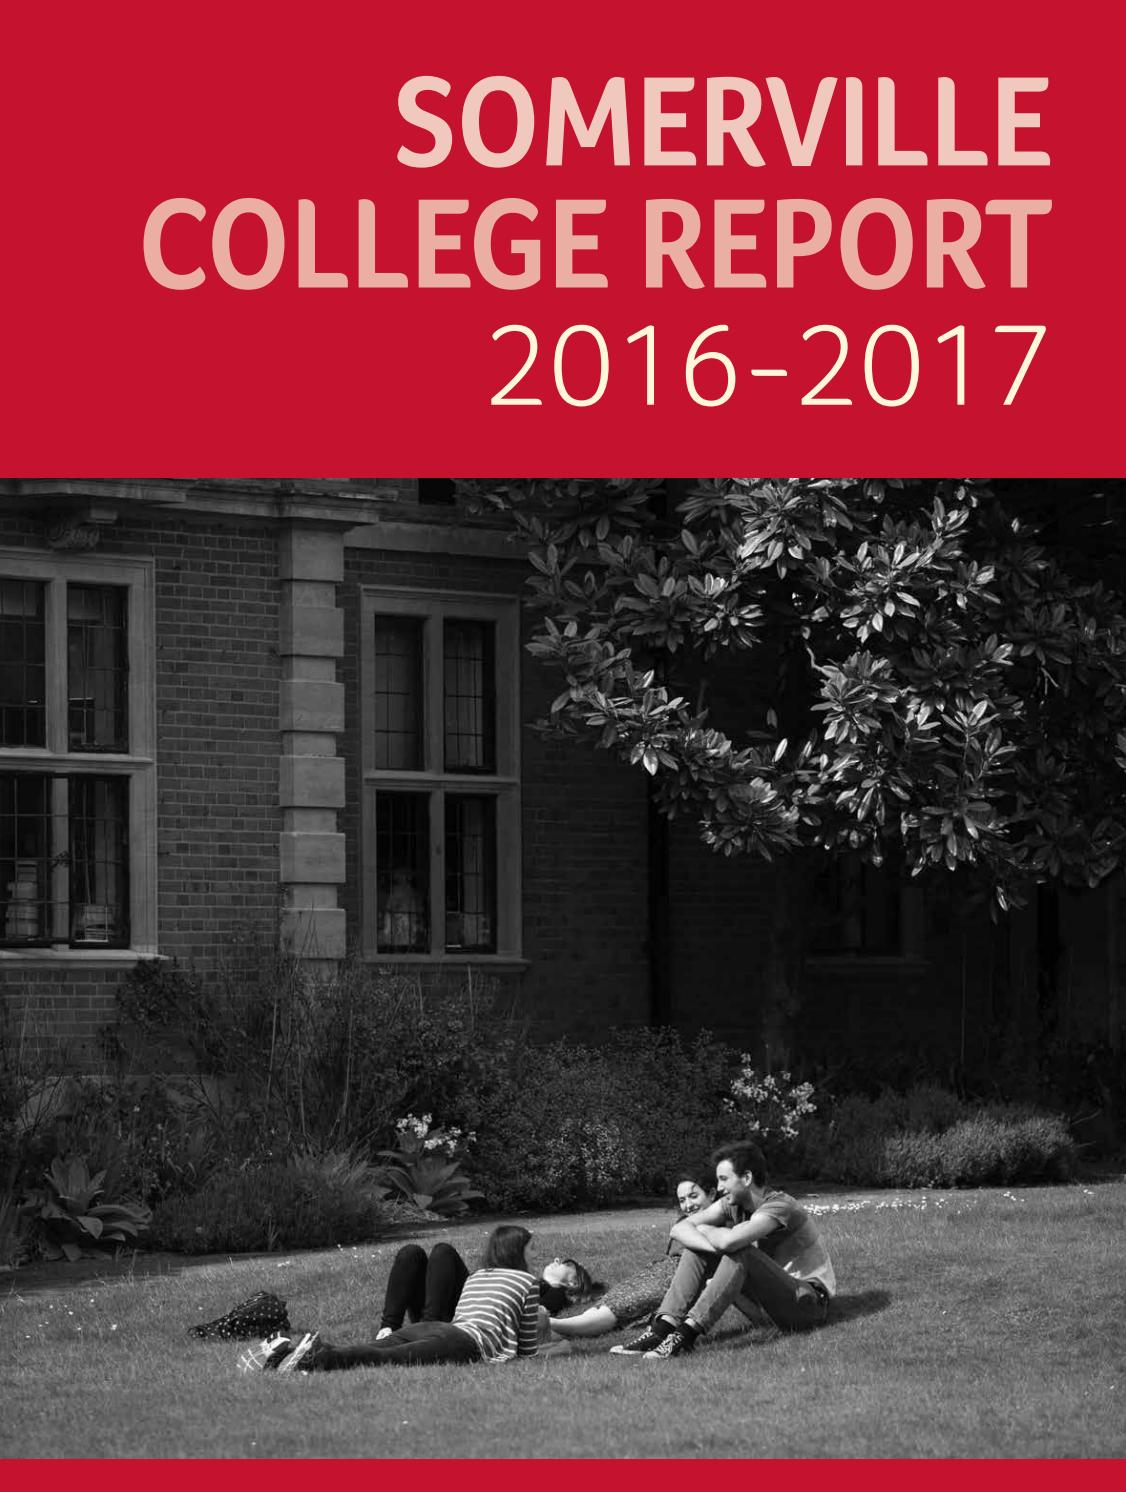 Somerville College Report 2016-17 by Somerville College - issuu